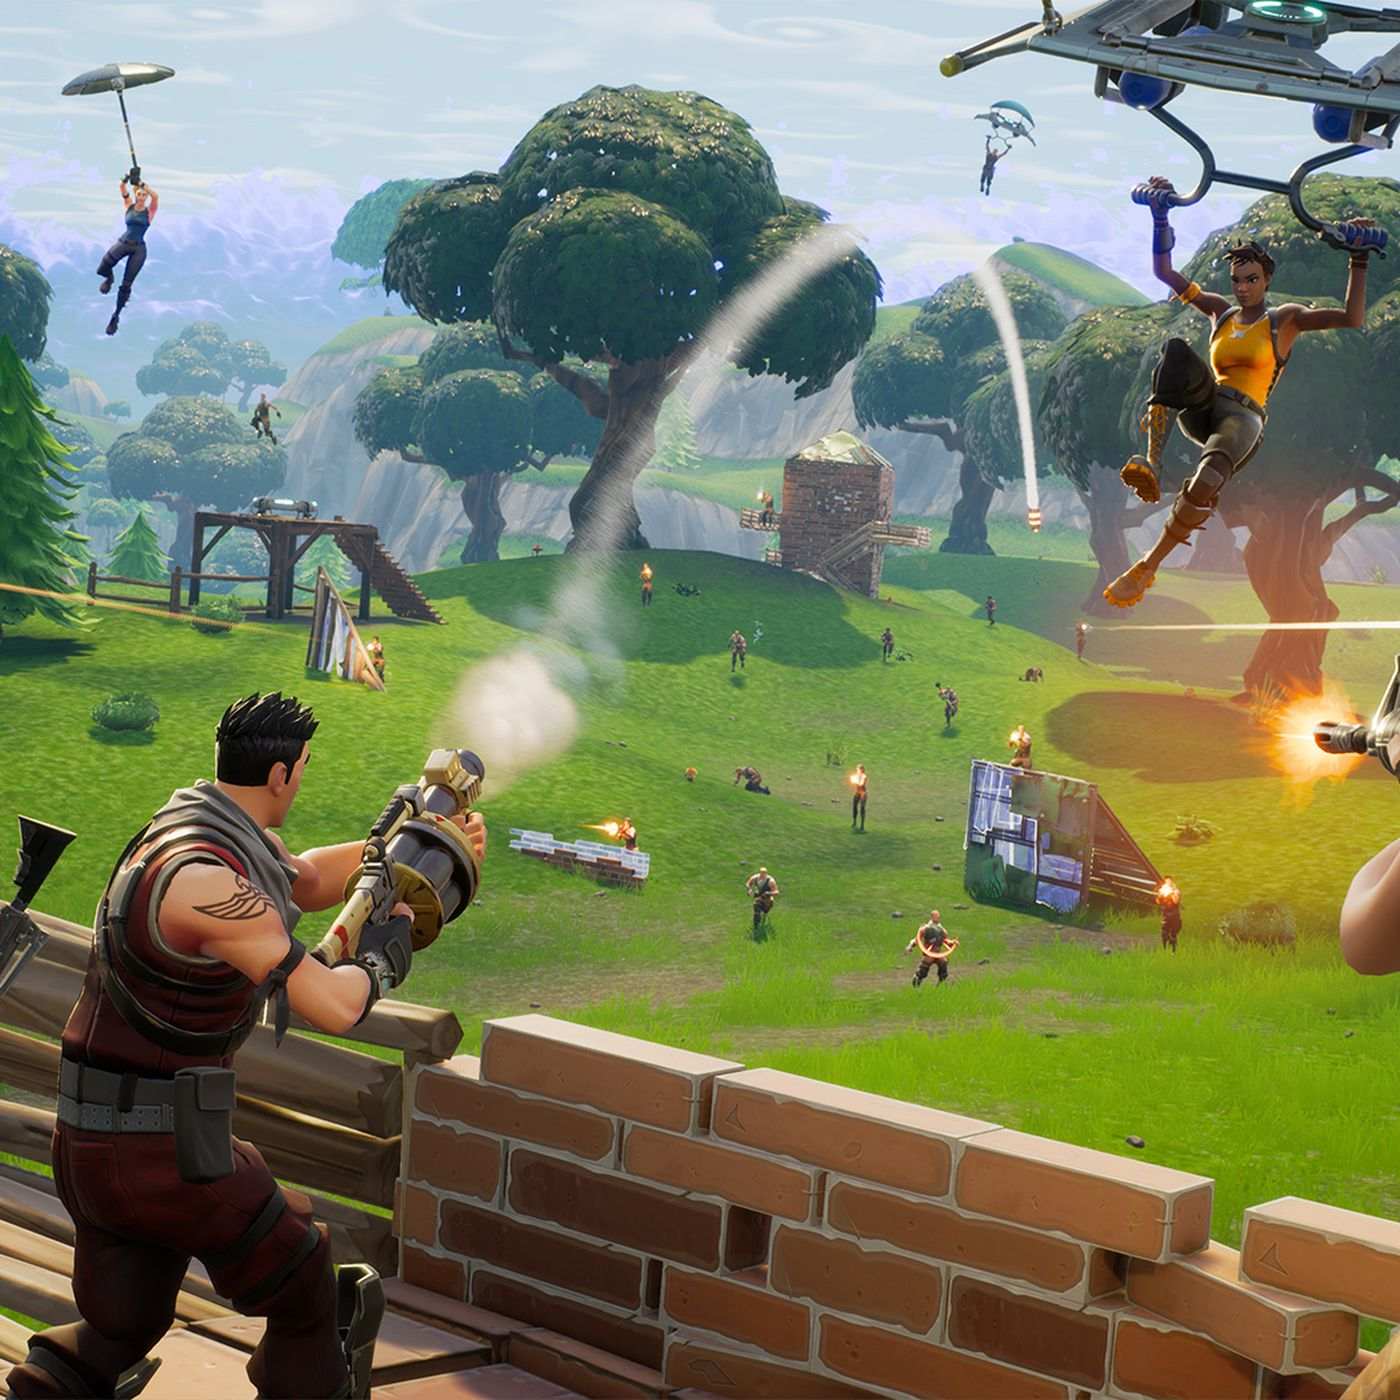 The beginner's guide to Fortnite for PUBG players - Polygon